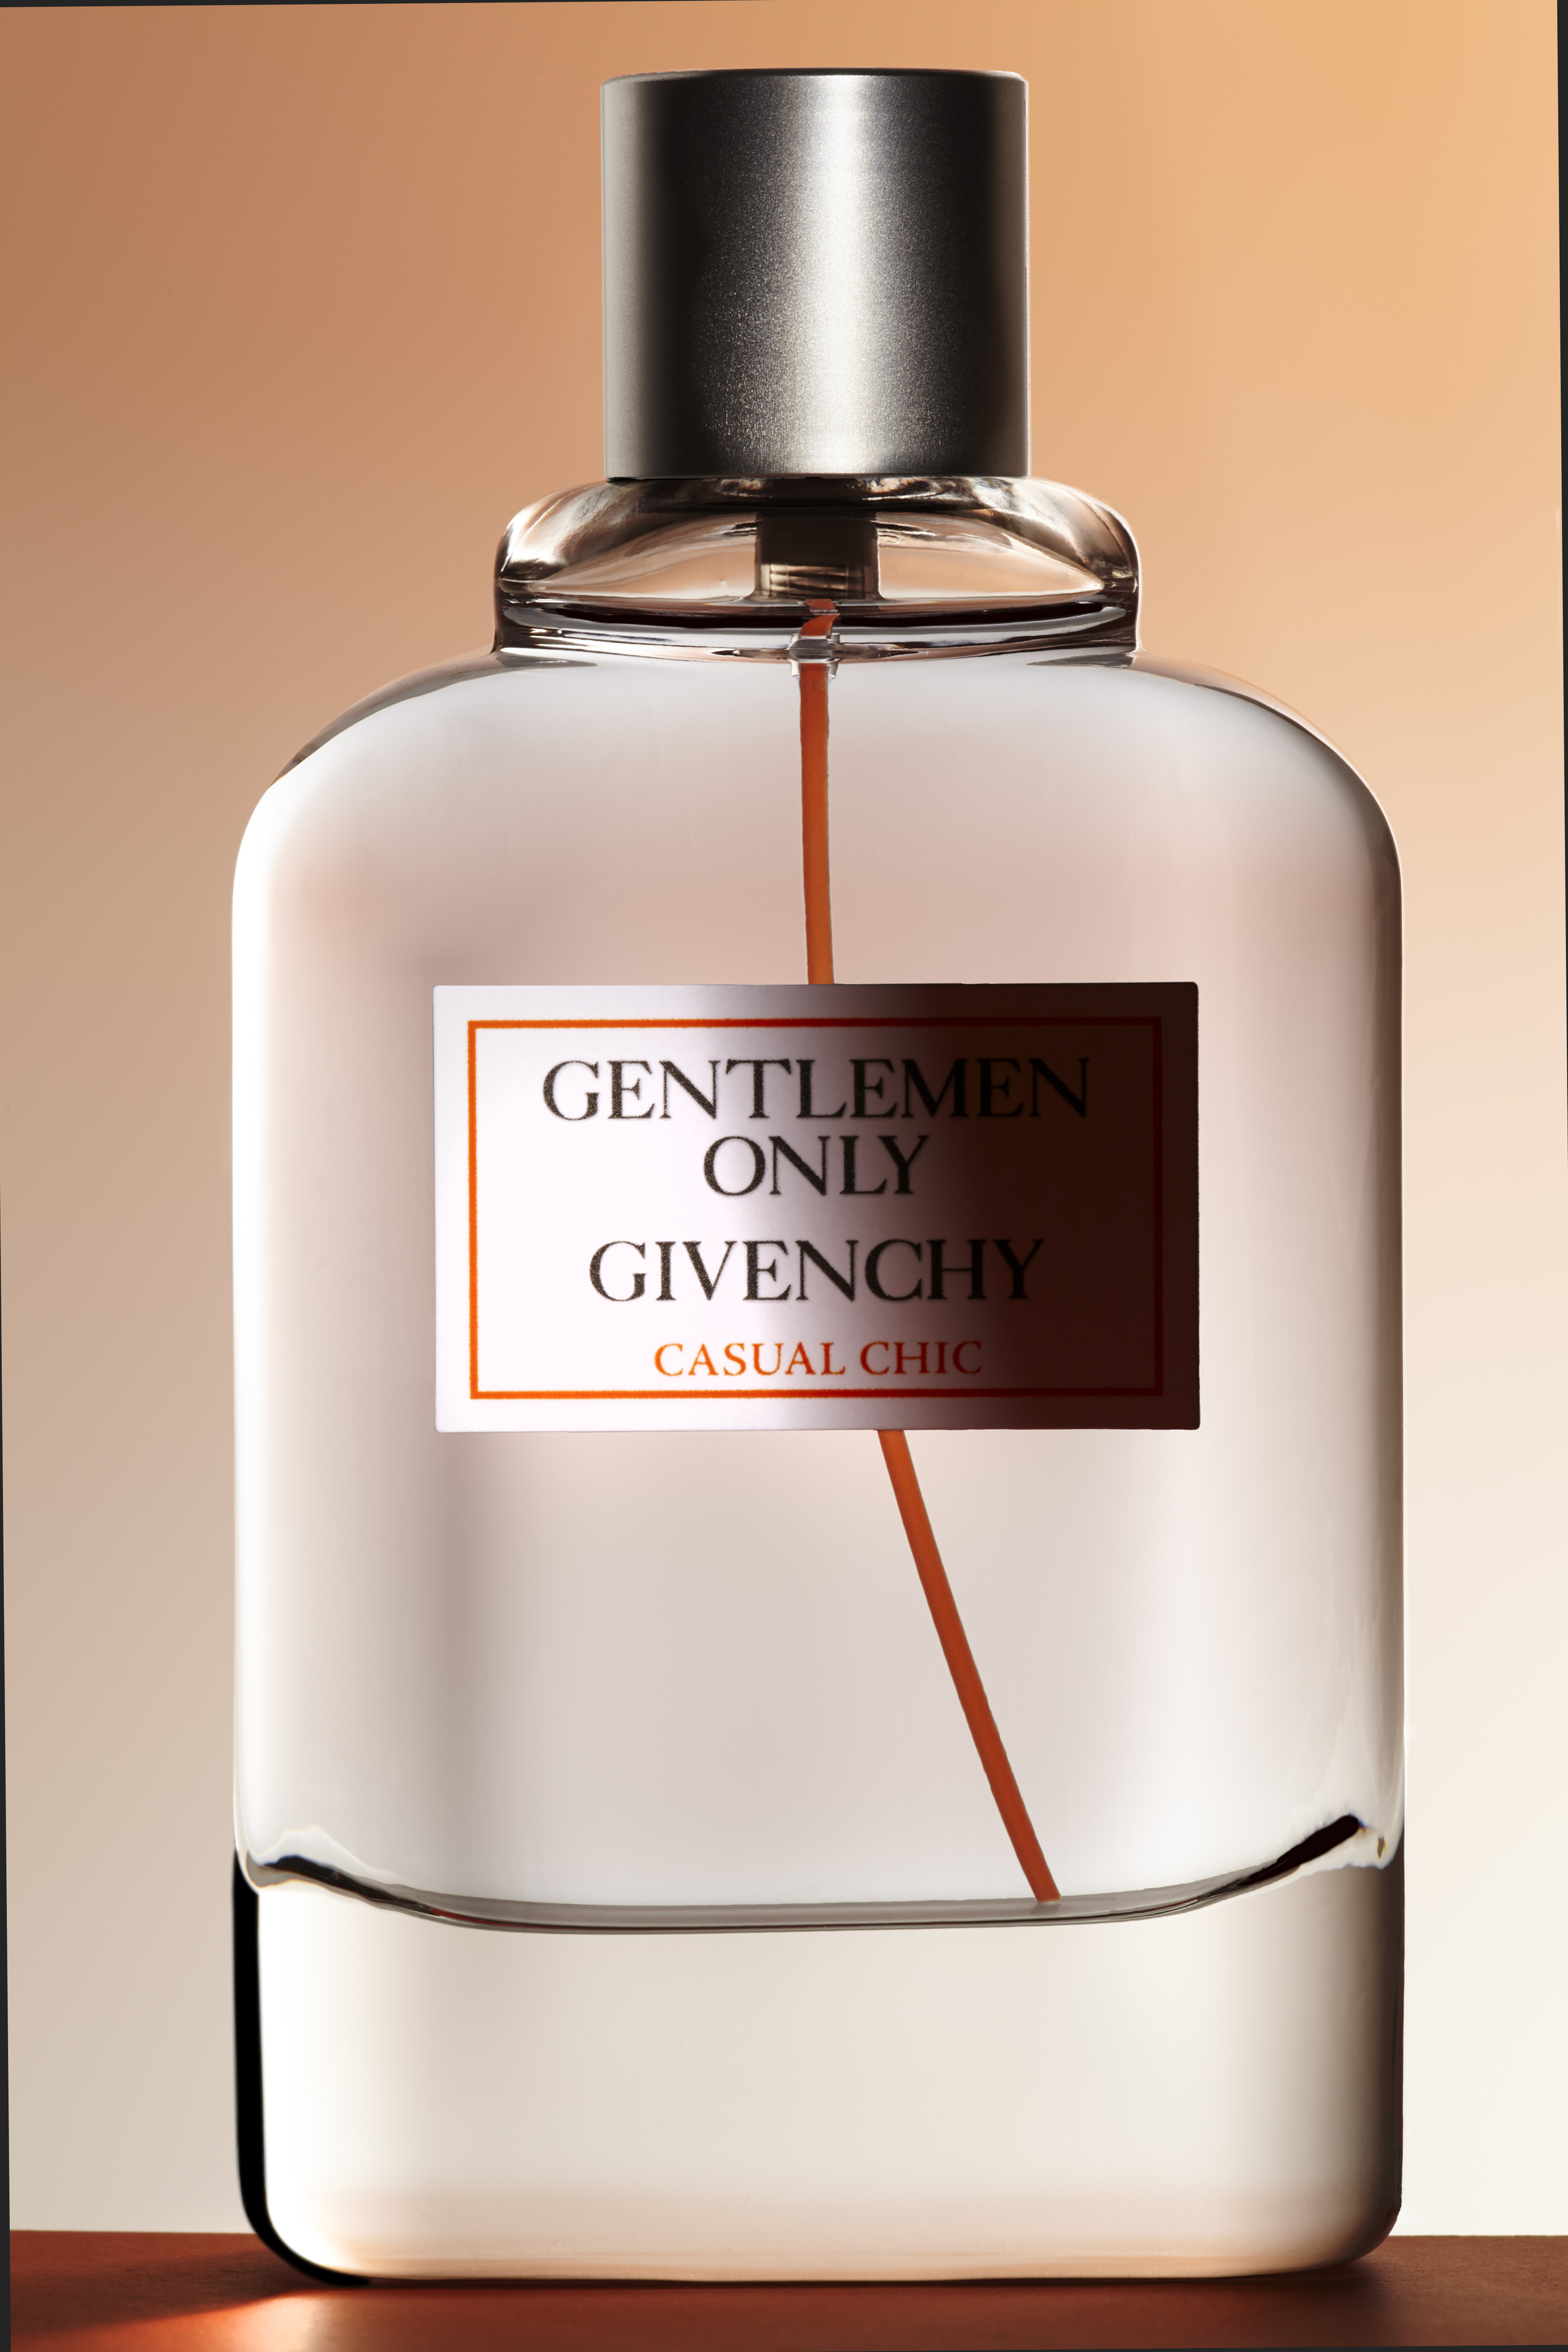 givenchy casual chic calques .jpg